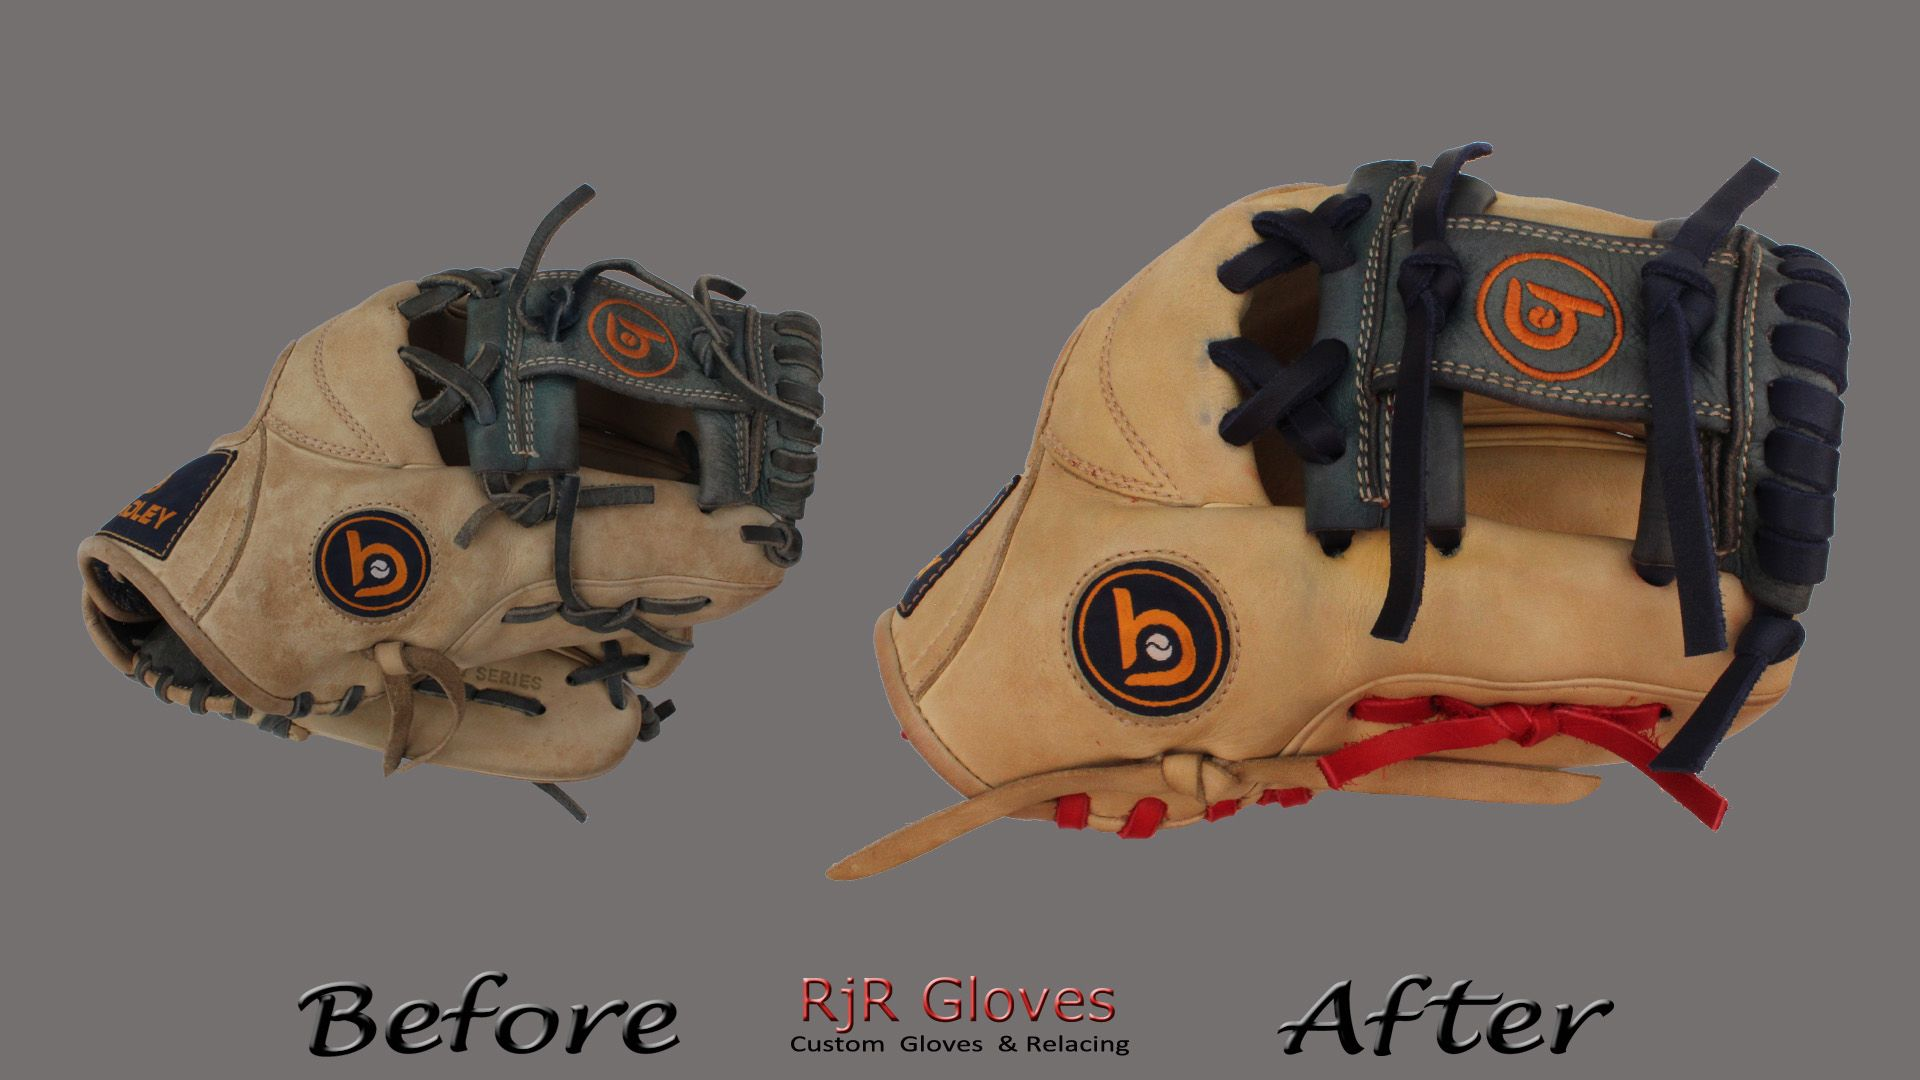 Contact Us If Your Glove Needs A Tune Up Or Overhaul Gloverepair Gloverelacing Relace Extrapading Customgloves Bas Baseball Glove Softball Gloves Gloves